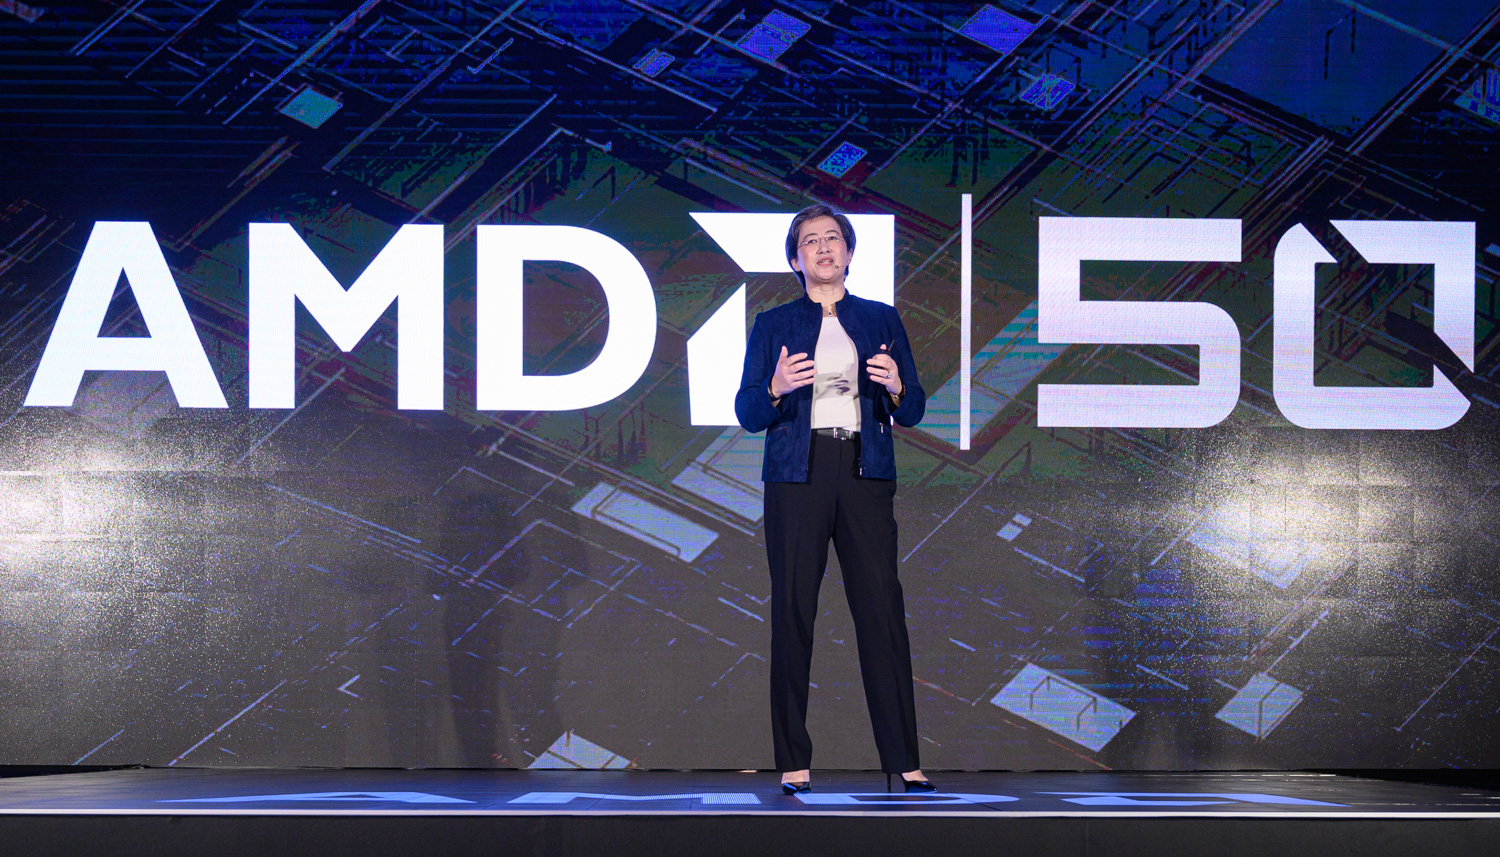 AMD CEO Lisa Su unveiled the third generation of her company's Ryzen desktop CPUs at the Computex show in Taiwan.